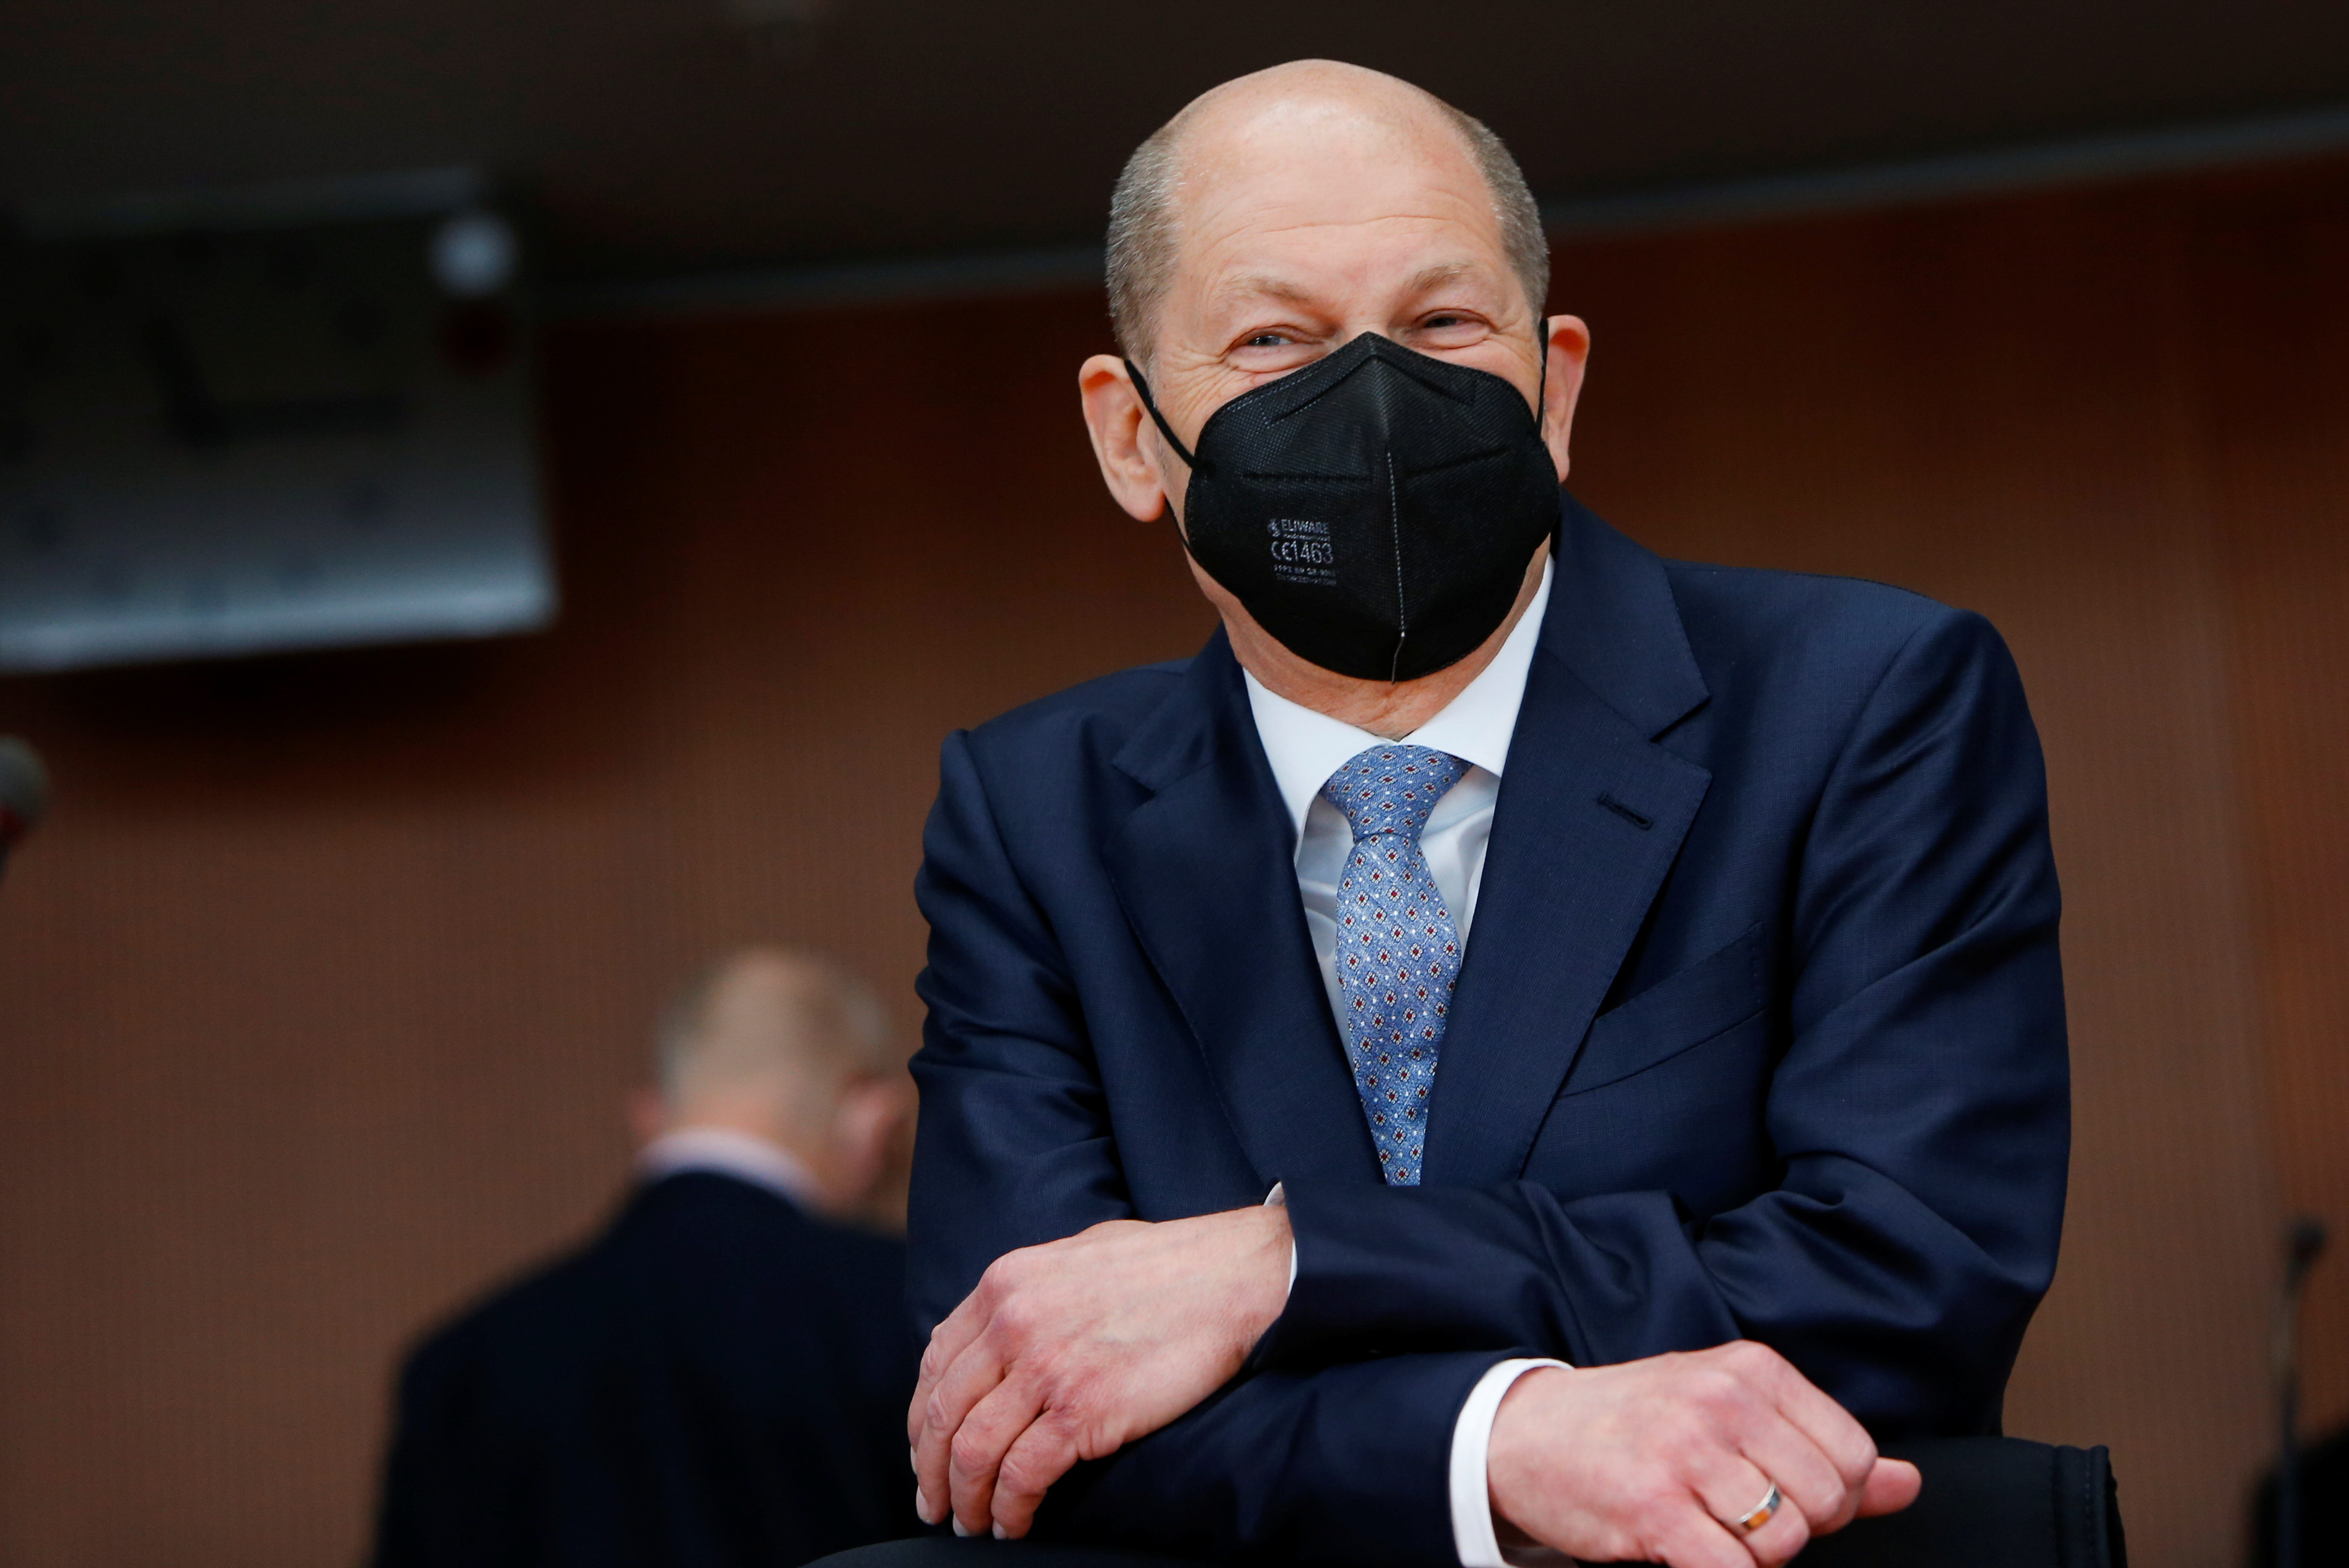 German Finance Minister Olaf Scholz looks on as he arrives to testify before a parliament committee investigating Wirecard, in Berlin, Germany April 22, 2021. REUTERS/Michele Tantussi/Pool